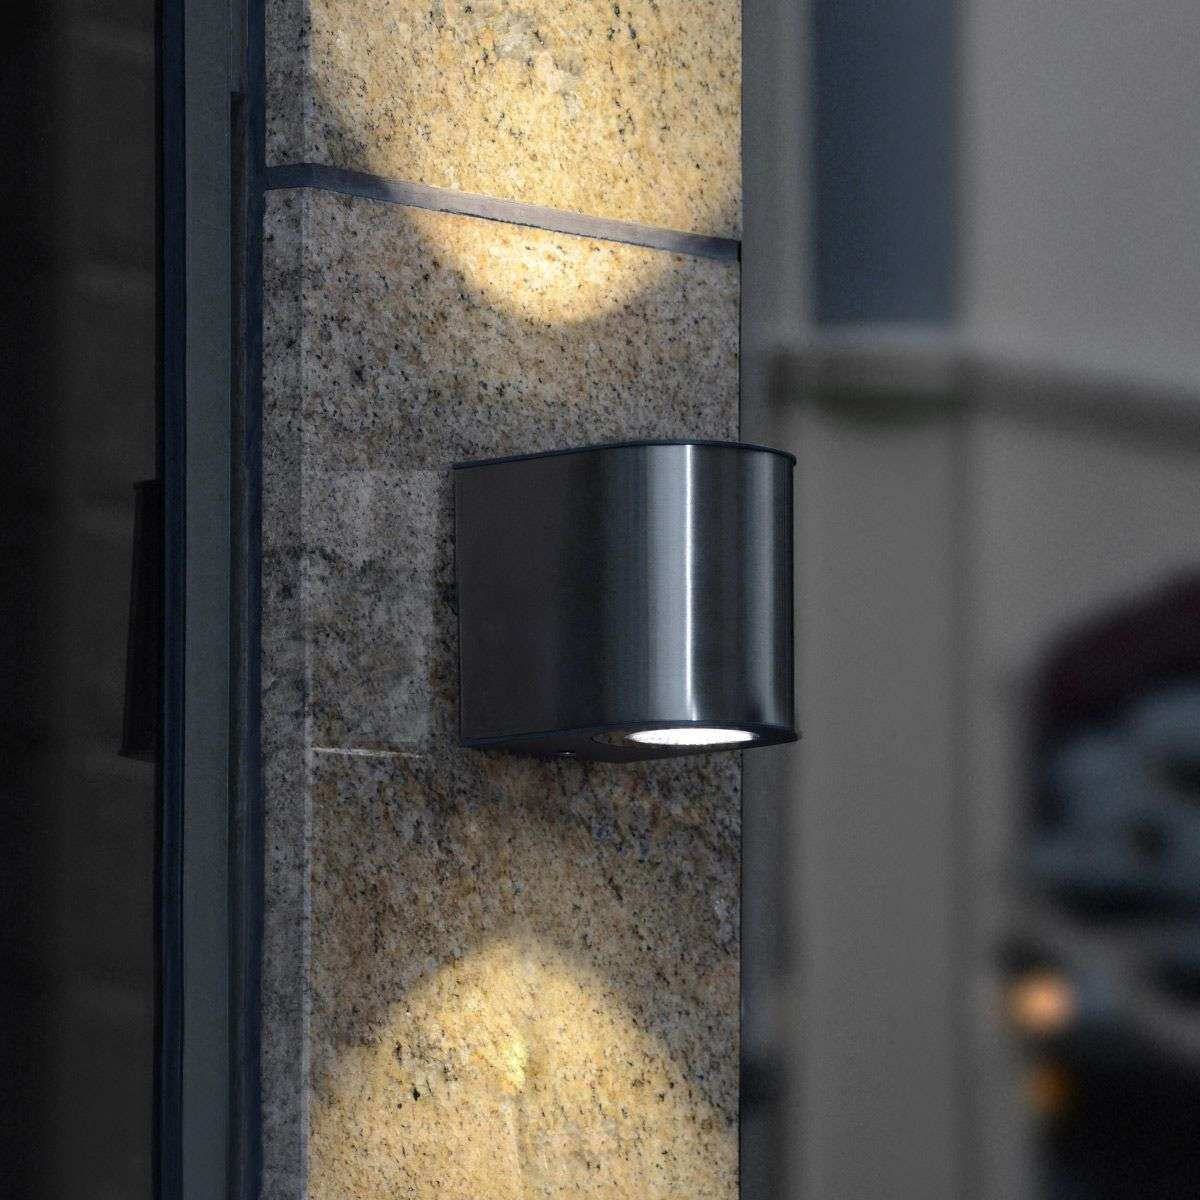 Stylish gemini ip54 led exterior wall light lights stylish gemini ip54 led exterior wall light mozeypictures Image collections